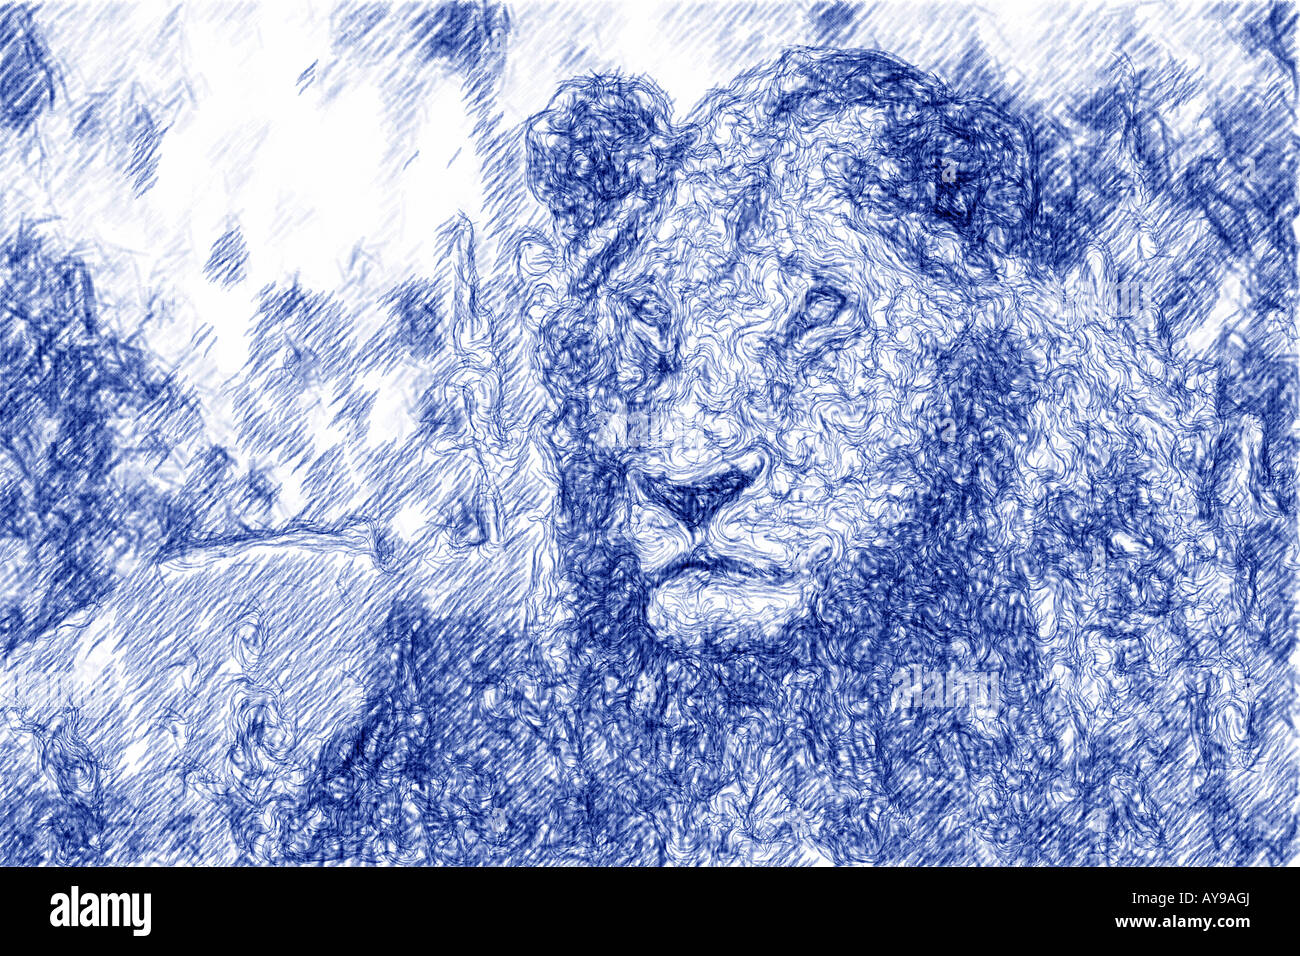 Male lion abstracted - Stock Image